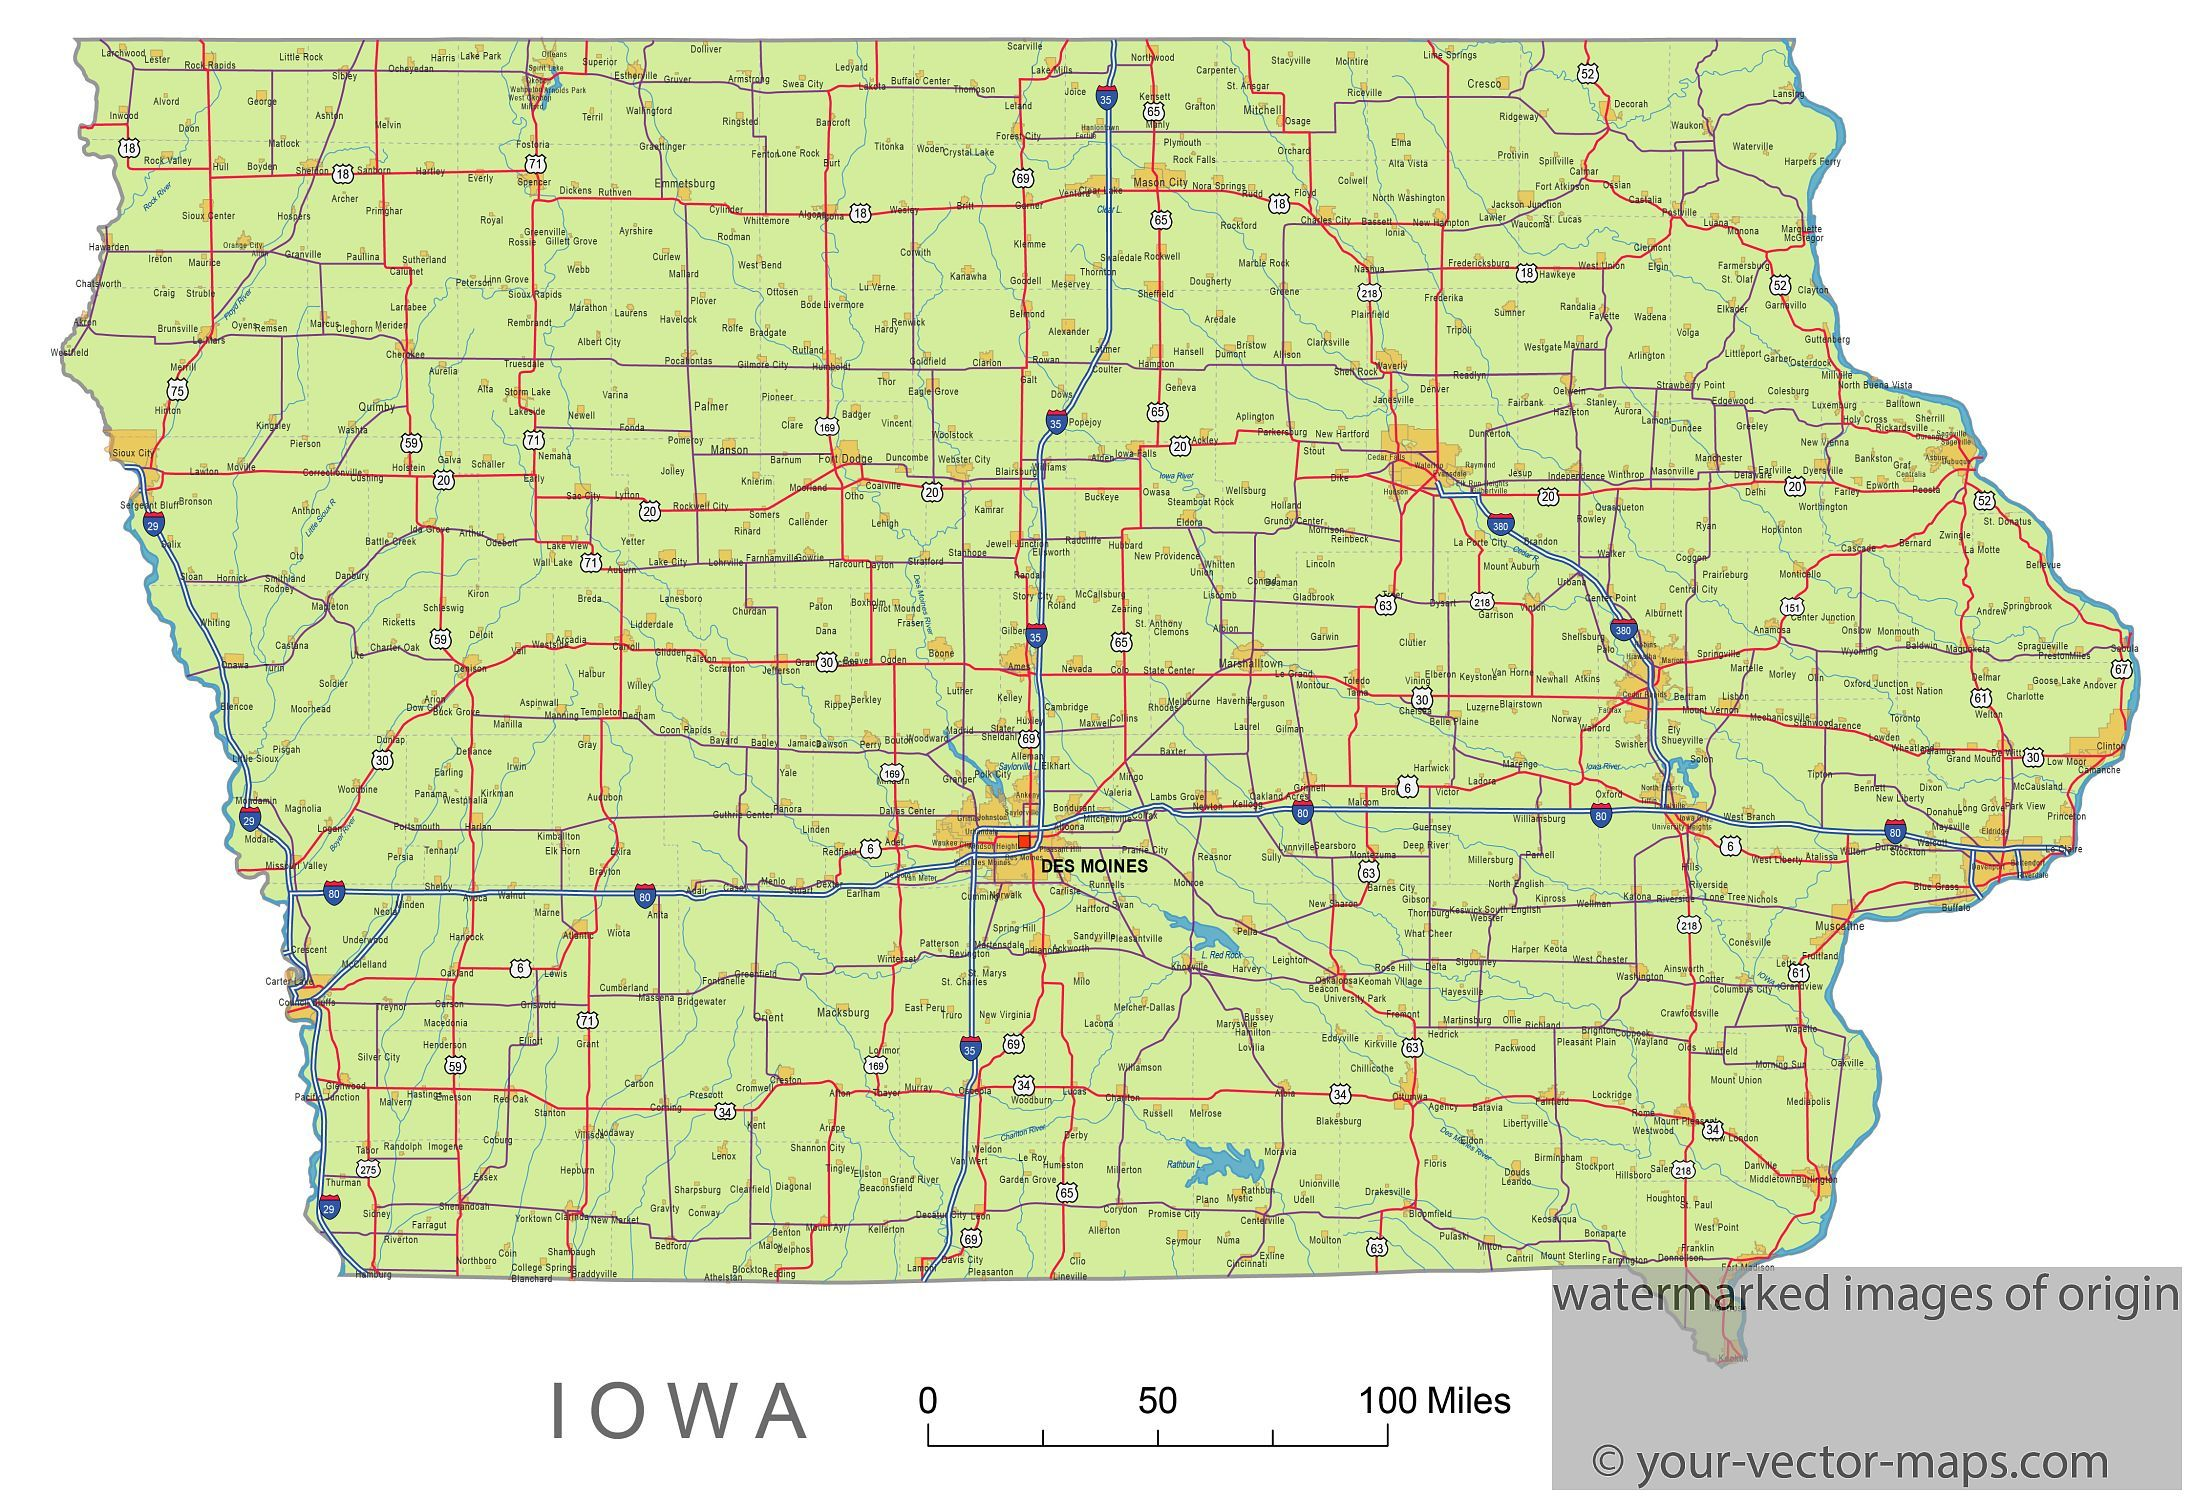 Iowa State Route Network Map Iowa Highways Map Cities Of Iowa - Map of iowa counties